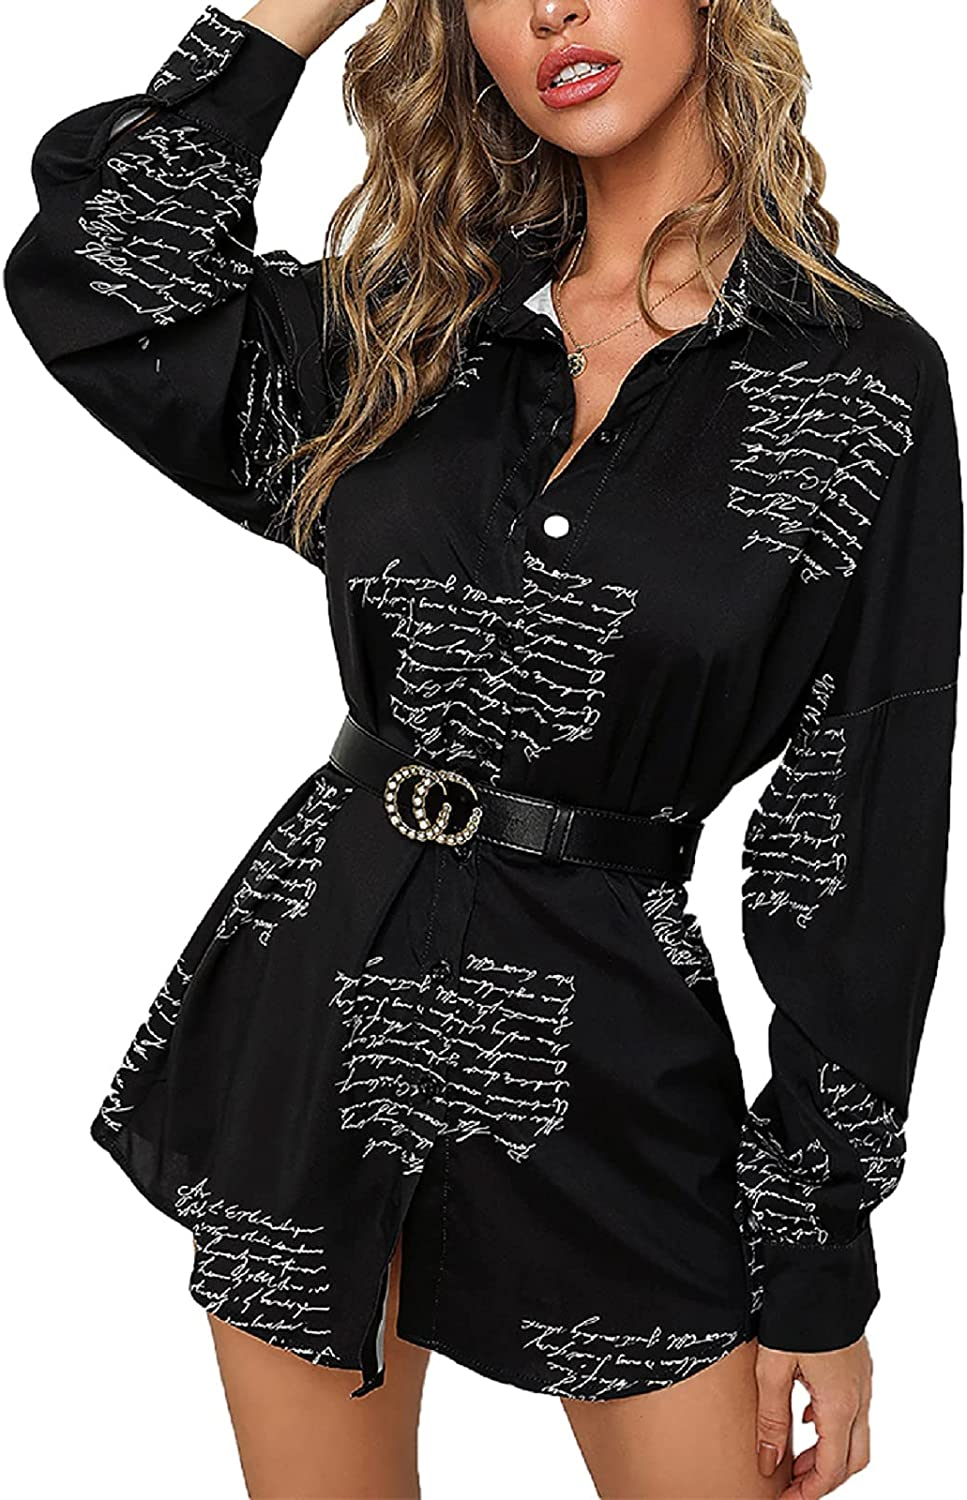 Women's T-Shirt Dresses Button Down Colorful Blouses Long Sleeve Floral Print Tops Loose Collar Sexy Dress